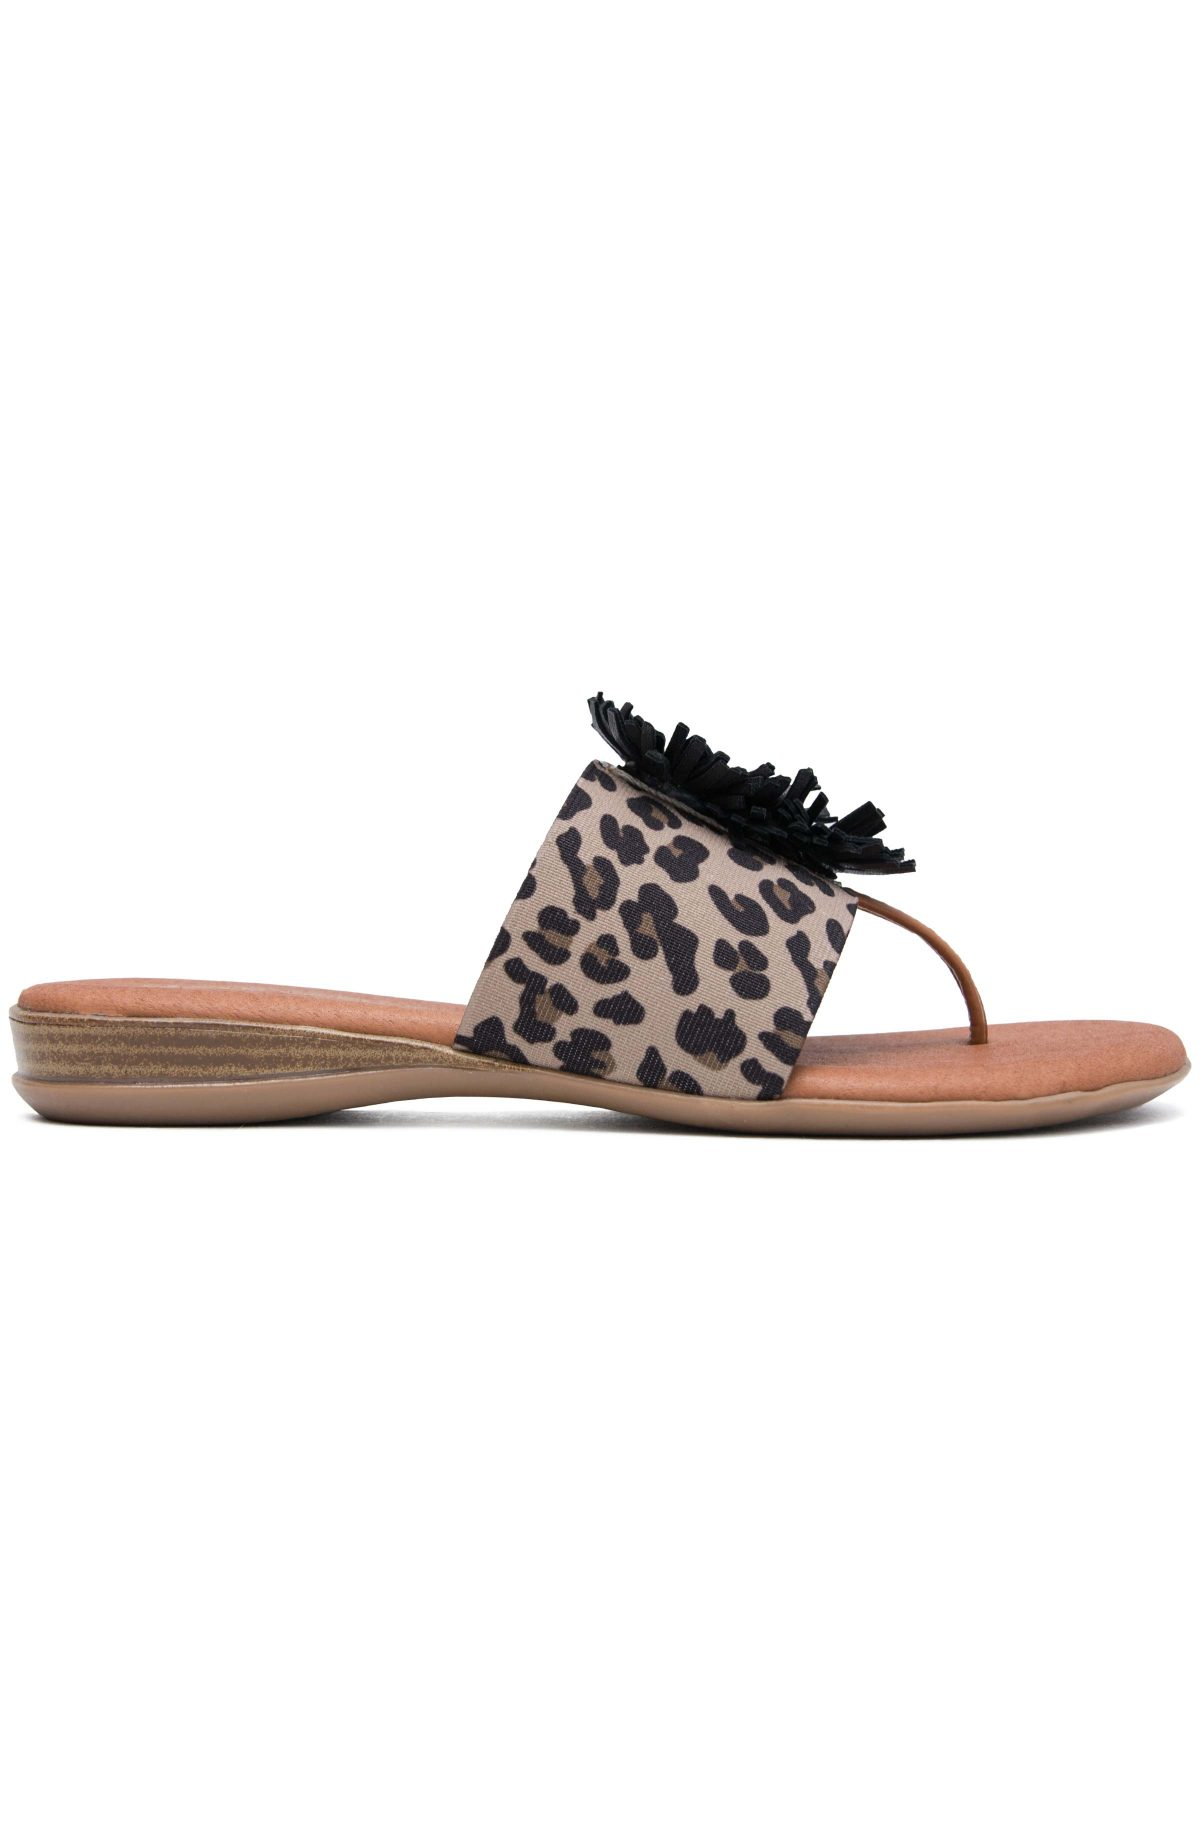 Andre Assous Novalee Woman's Sandal with Fringe Detail  Ooh! Ooh! Shoes woman's clothing and shoe boutique naples, charleston and mashpee.